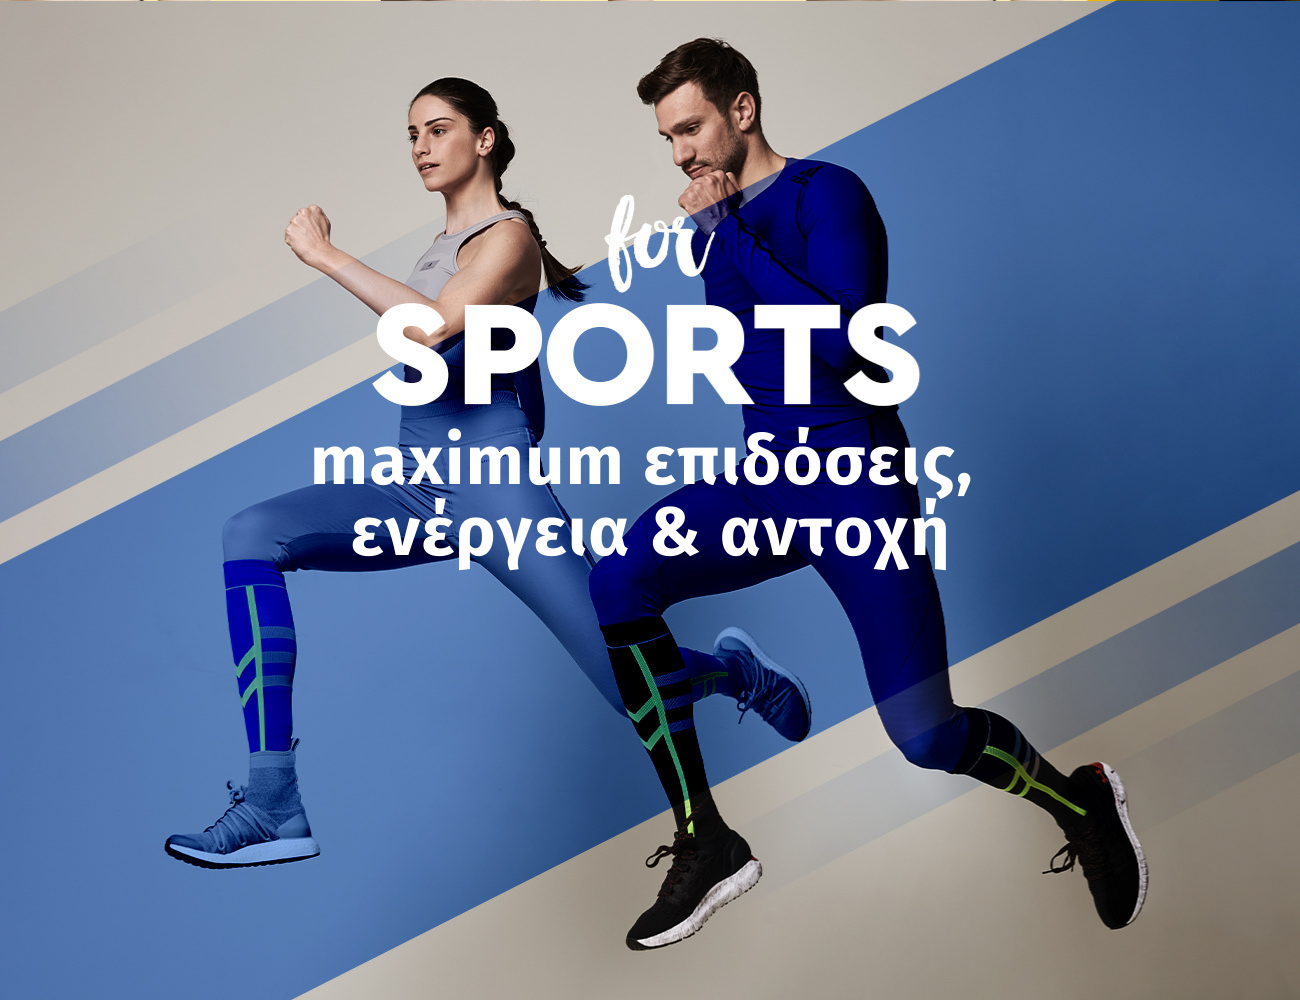 For Sports